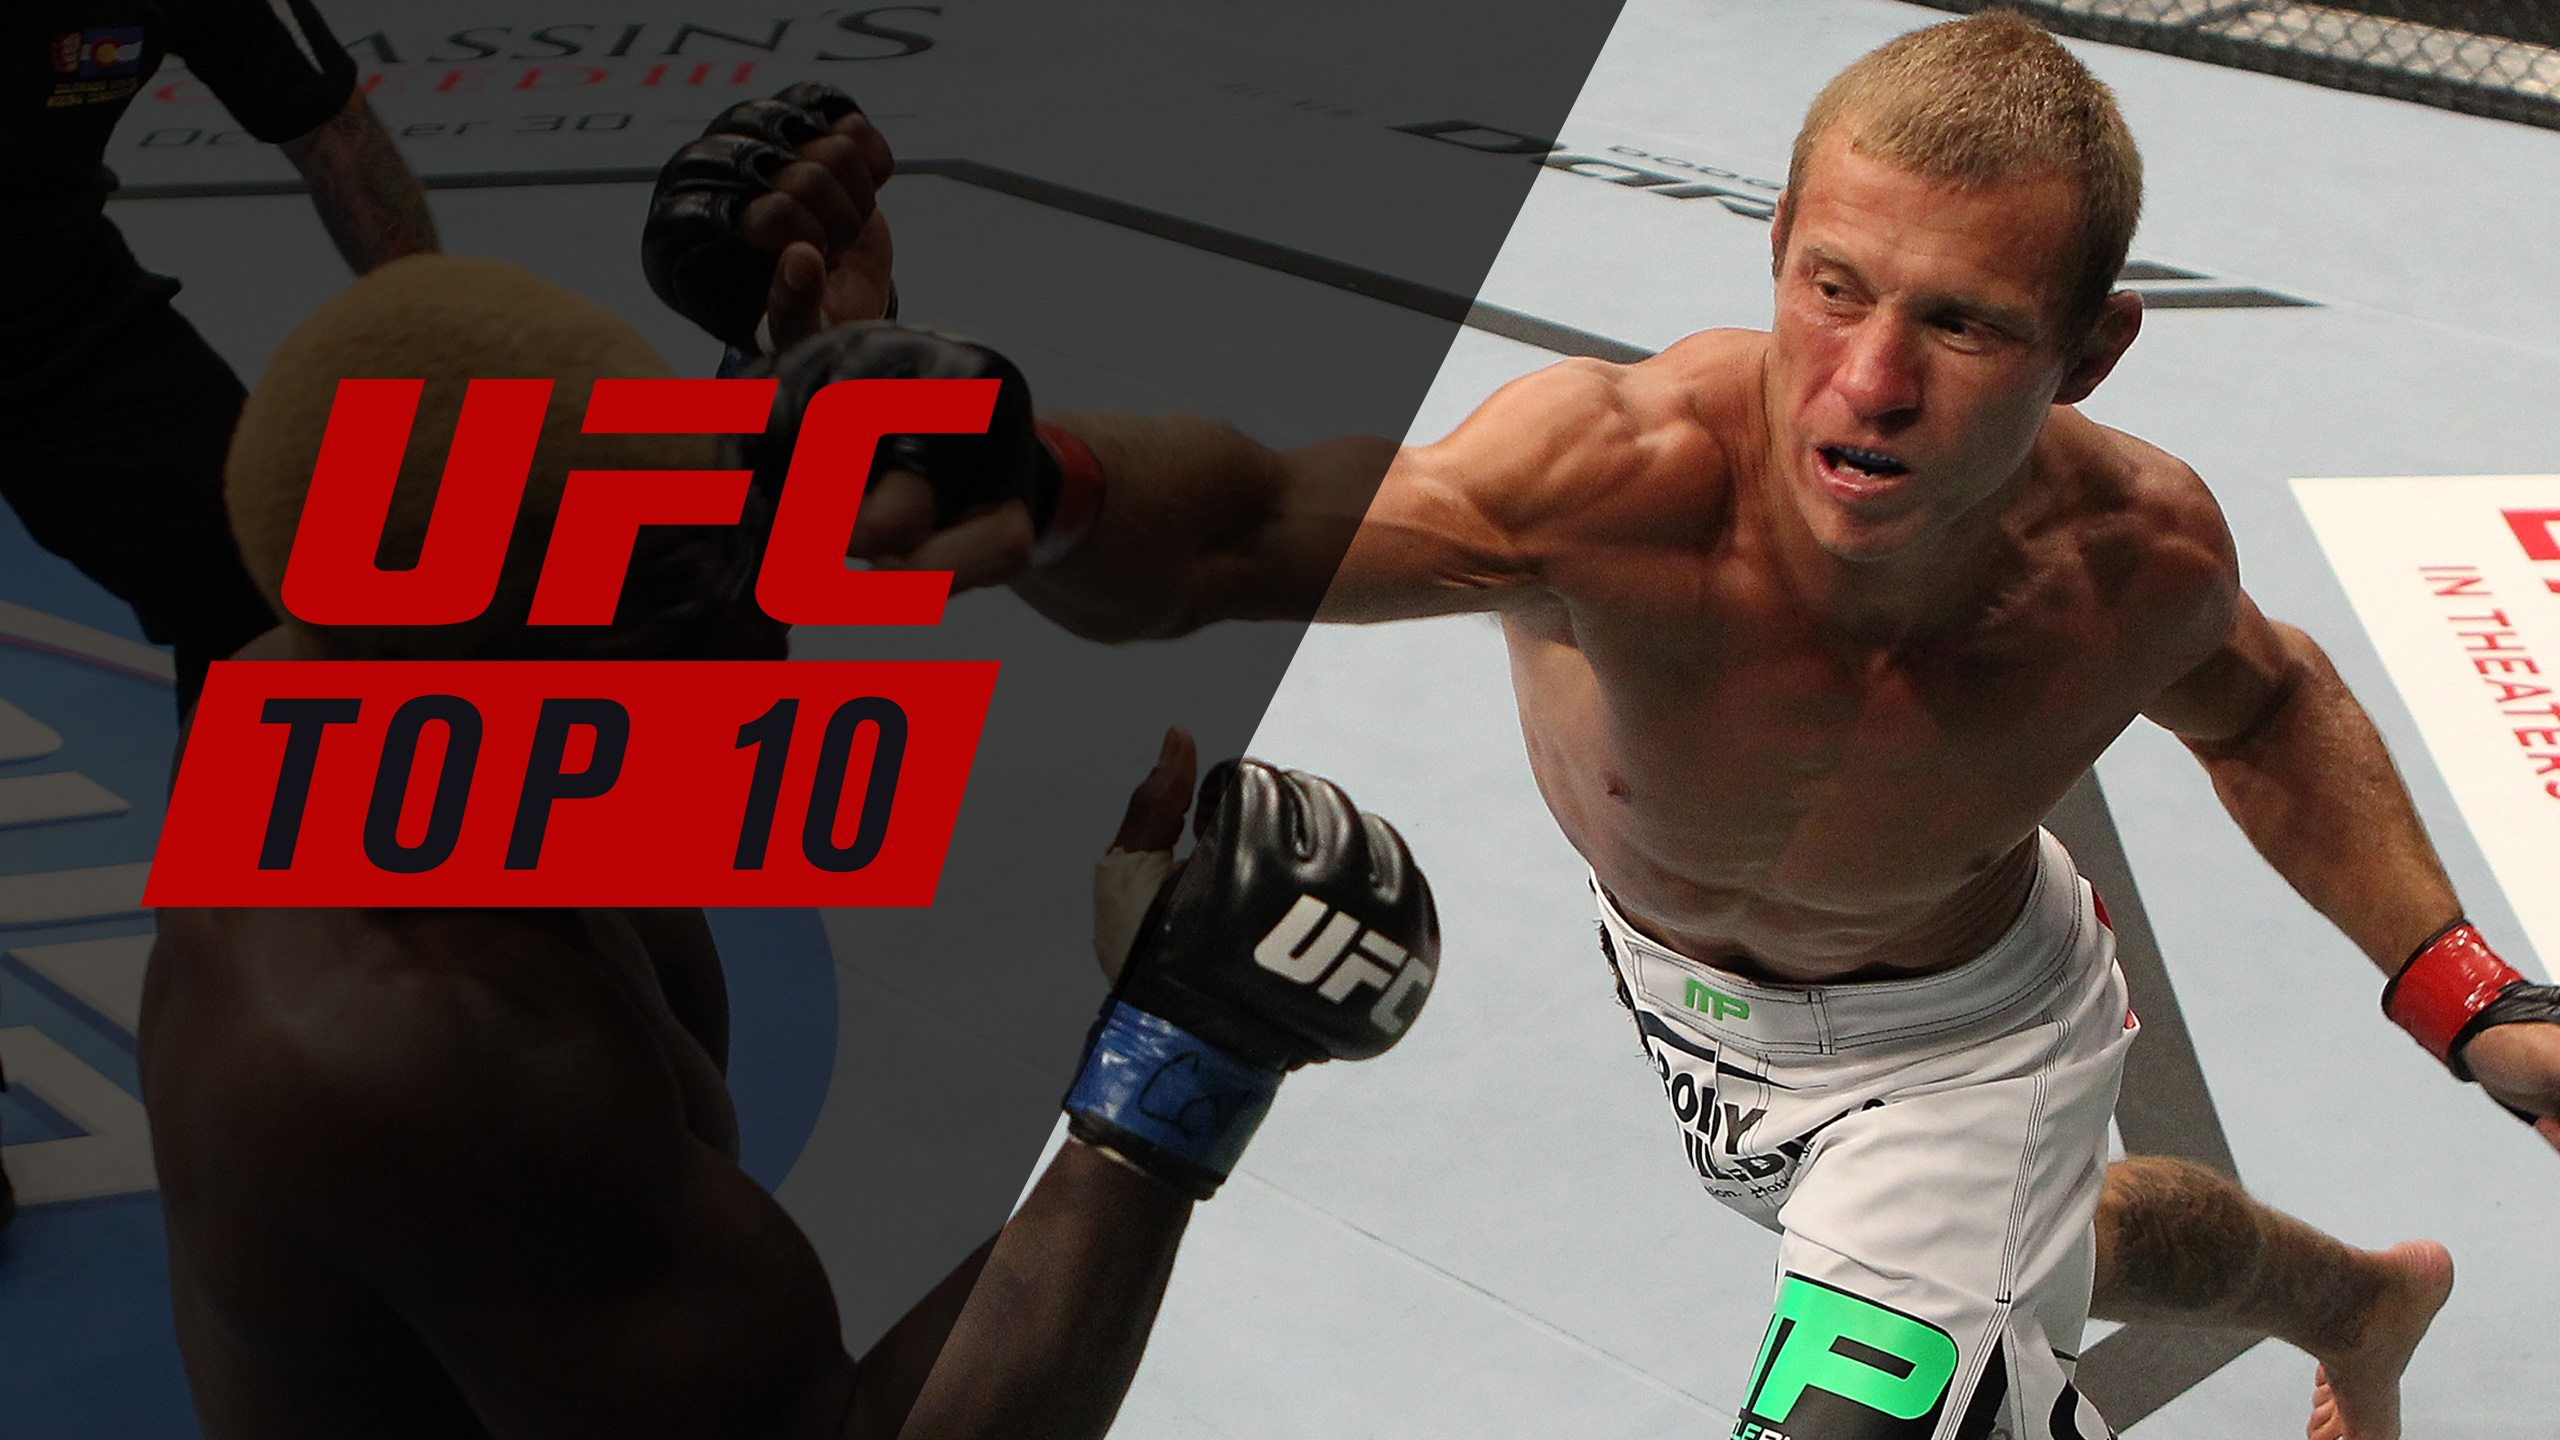 UFC Top 10: One-Round Wars